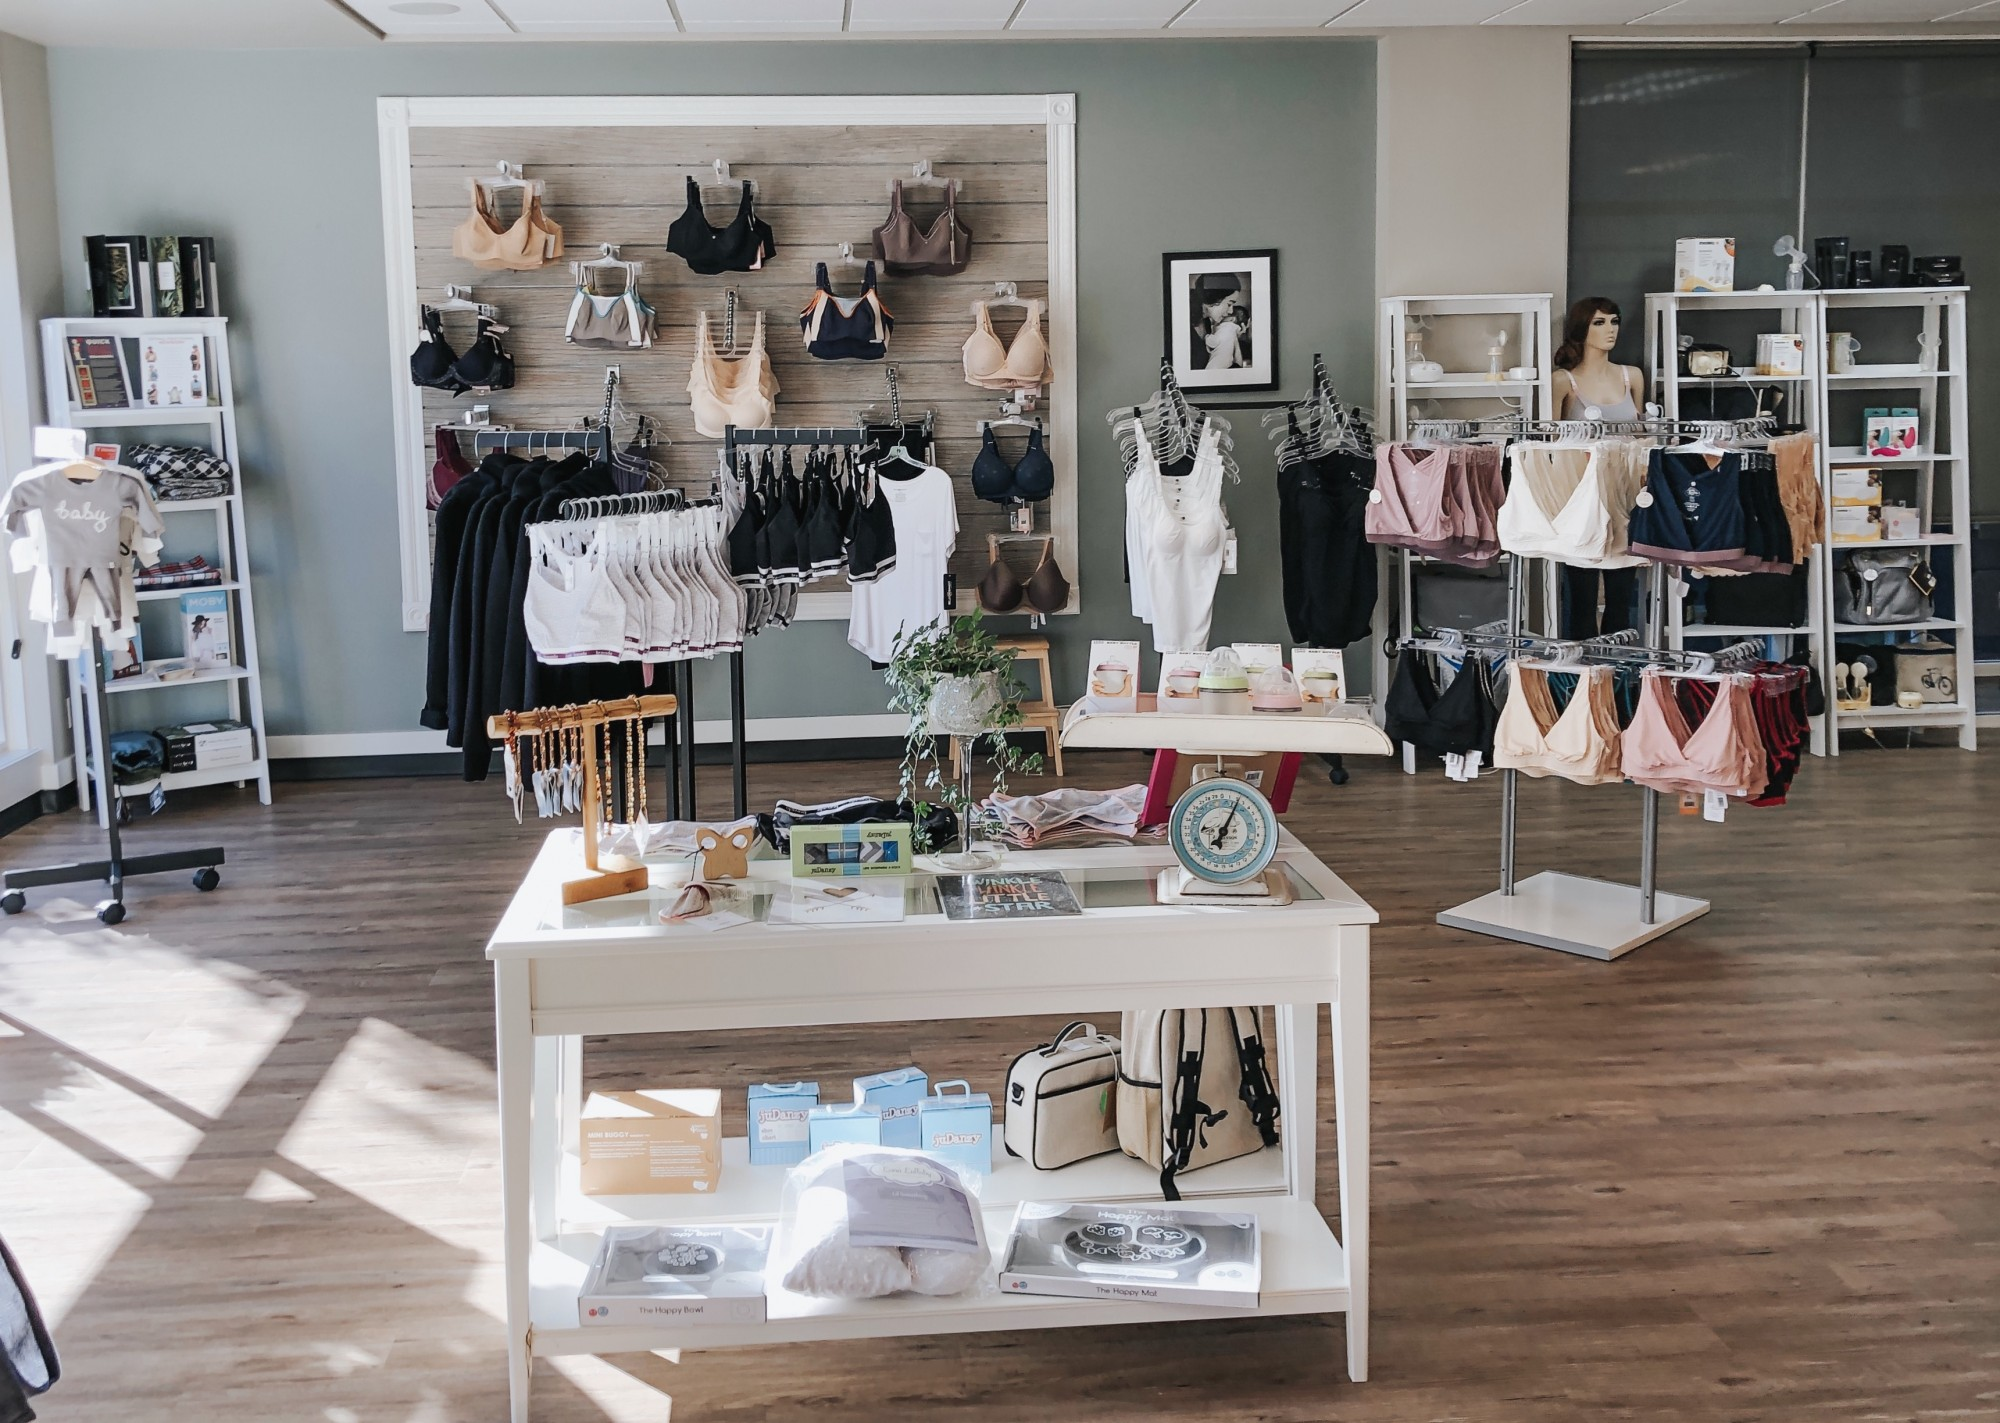 Nurturing Expressions boutiques are located in West Seattle, Tacoma, Poulsbo, and Tukwila